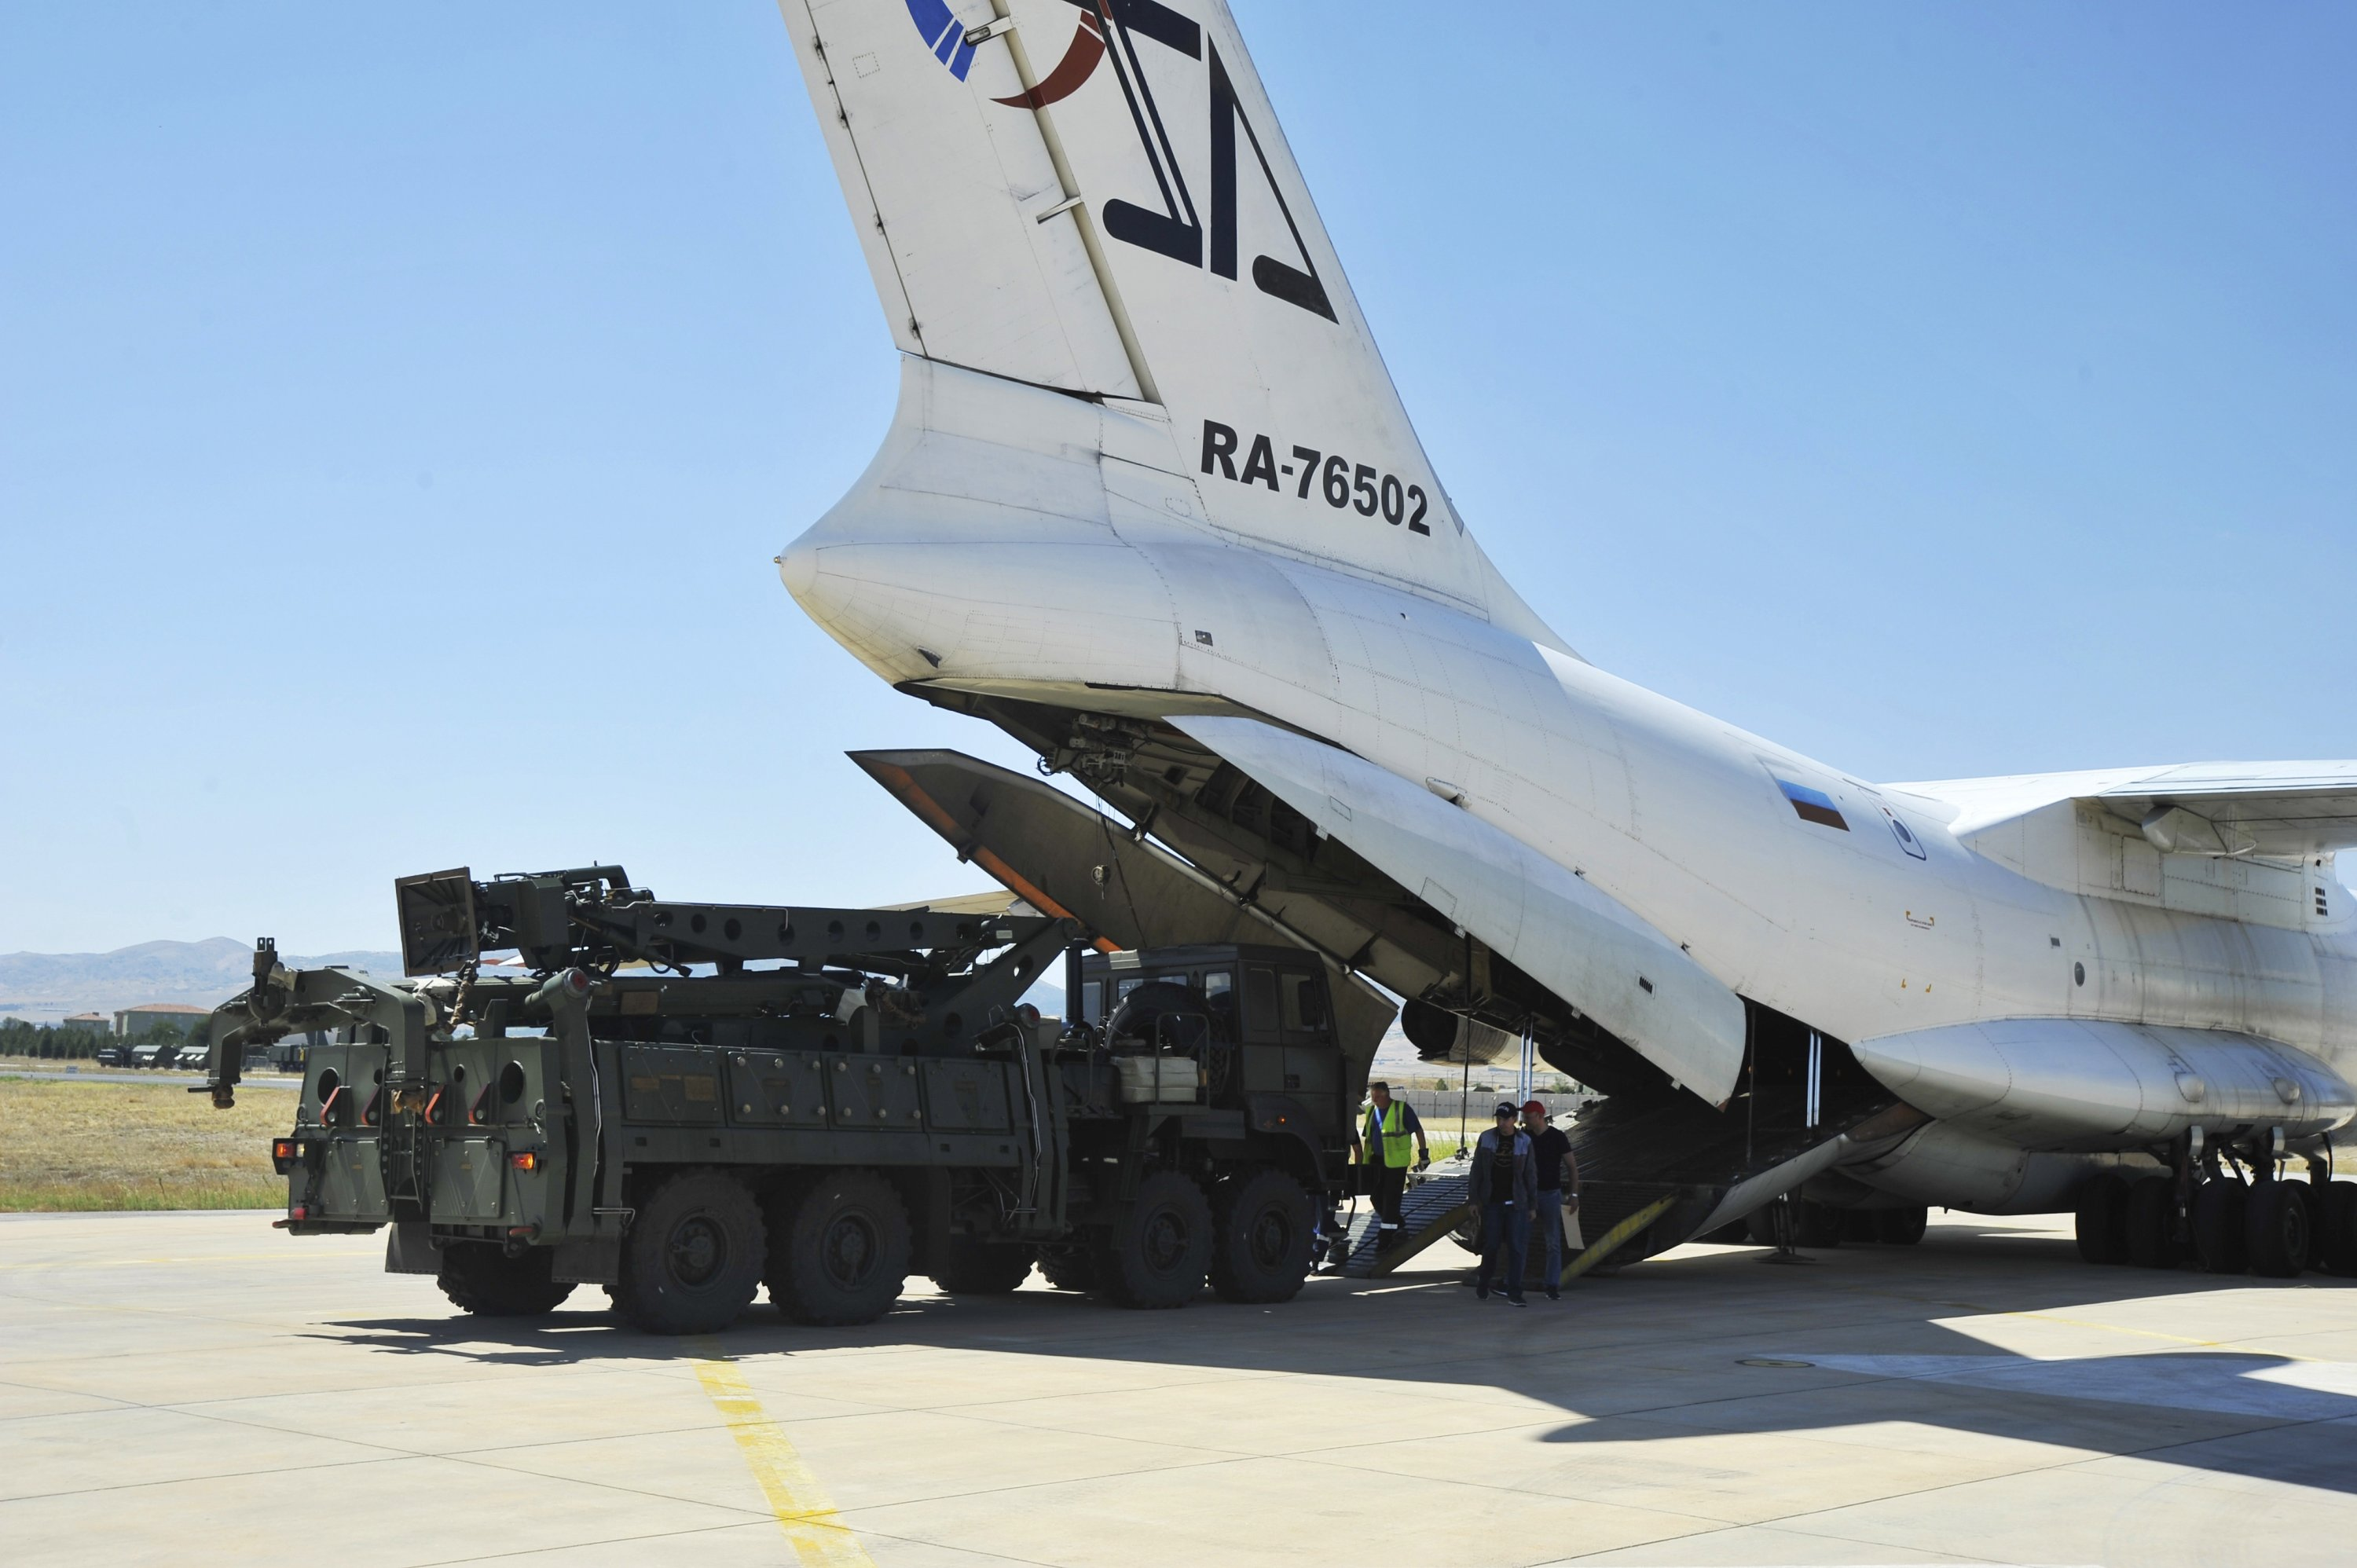 A Russian transport aircraft, carrying parts of the S-400 air defense systems, lands at the Mürted military airport outside Ankara, Turkey, Aug. 27, 2019. (AP Photo)